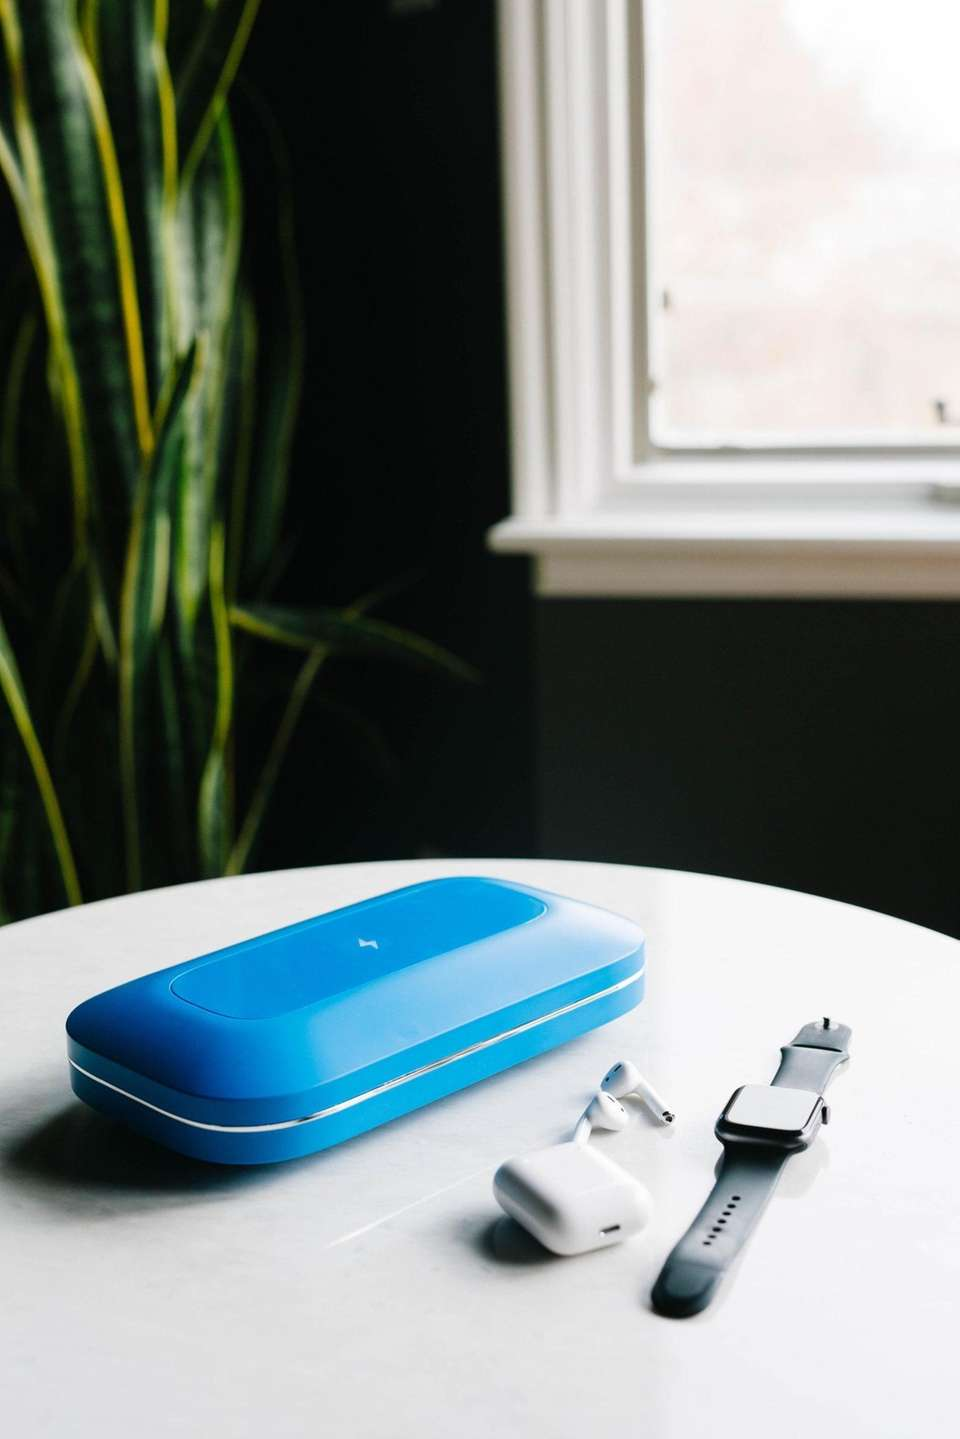 Clean your smartphone and accessories with the PhoneSoap